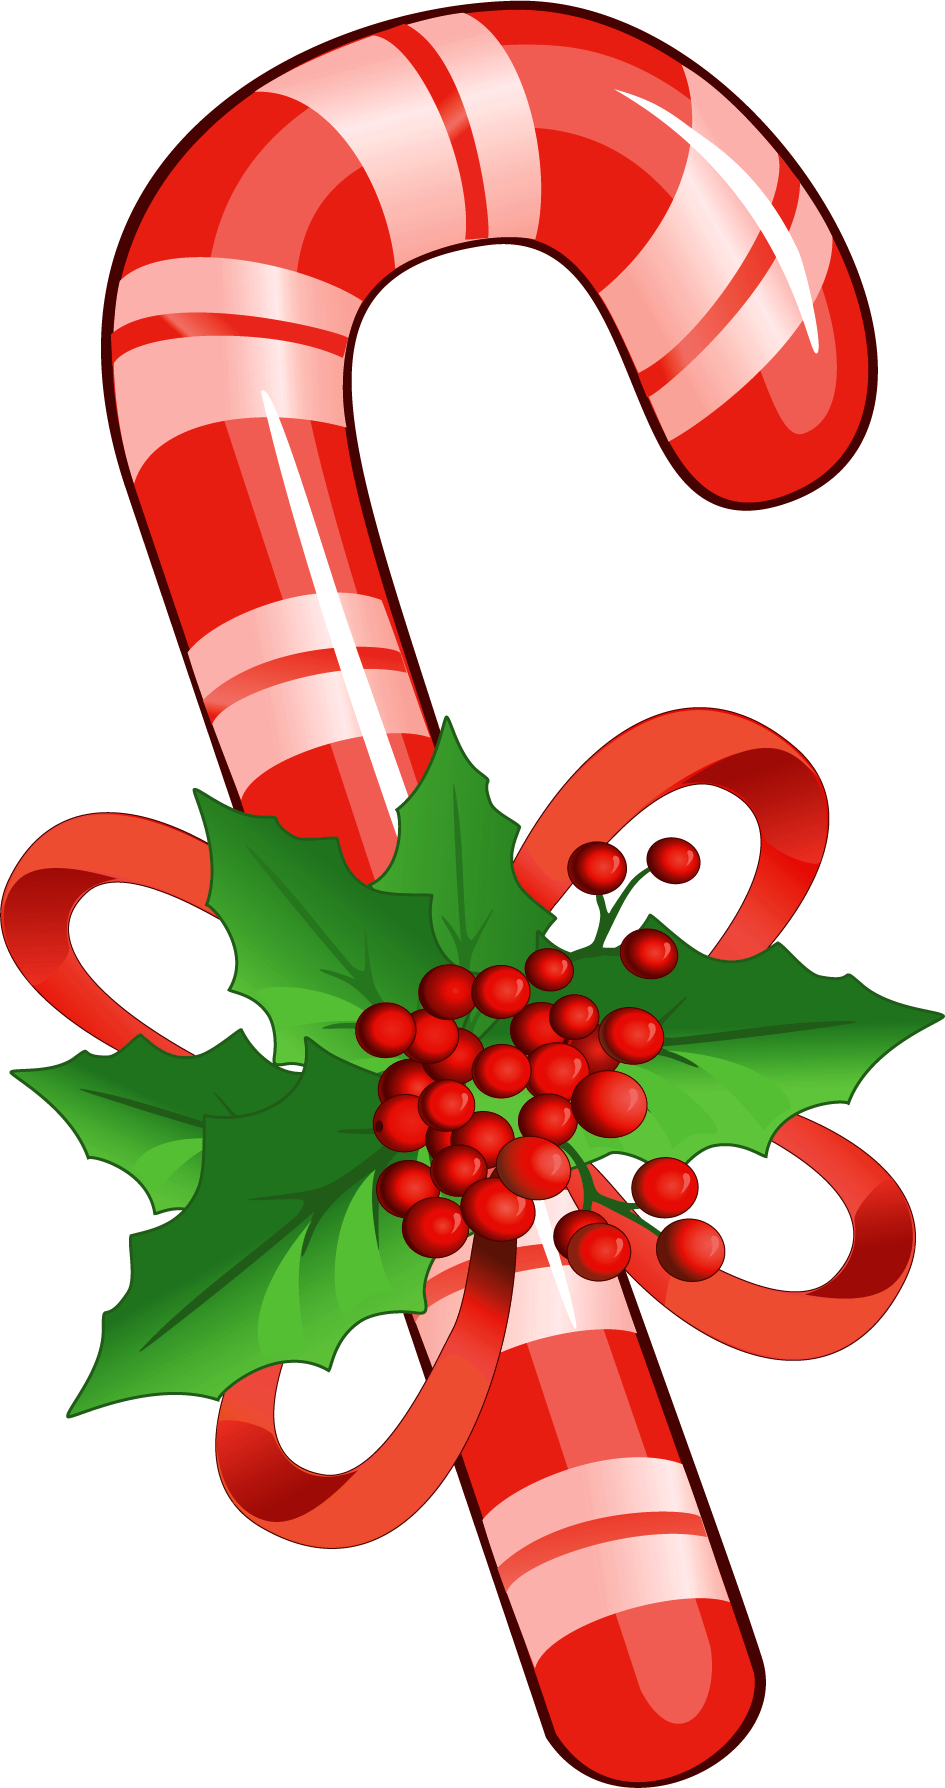 Candy cane clipart